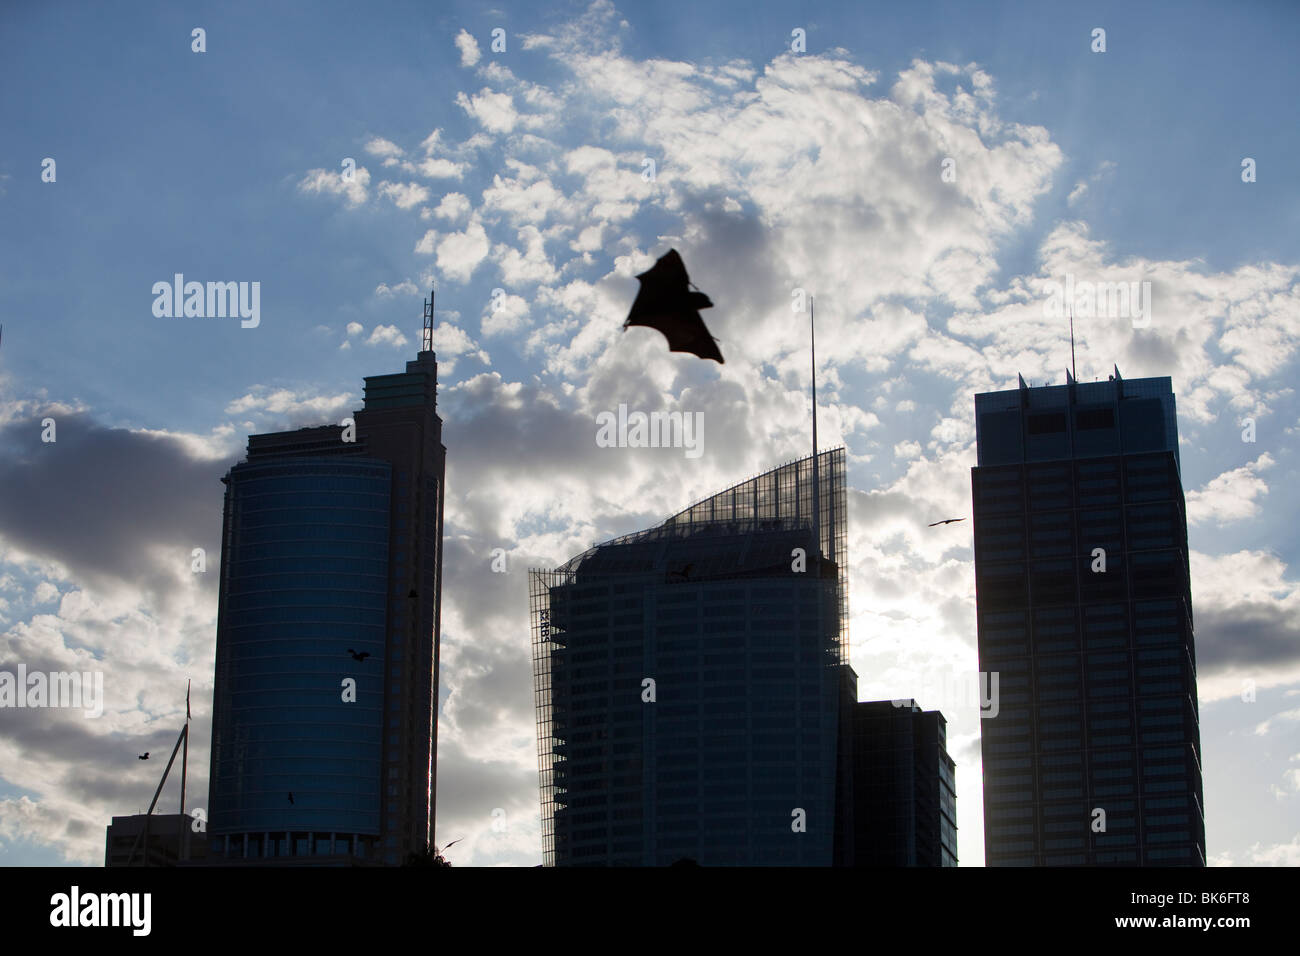 Fruit bats flying in front of Sydney city centre tower blocks, Australia. Stock Foto